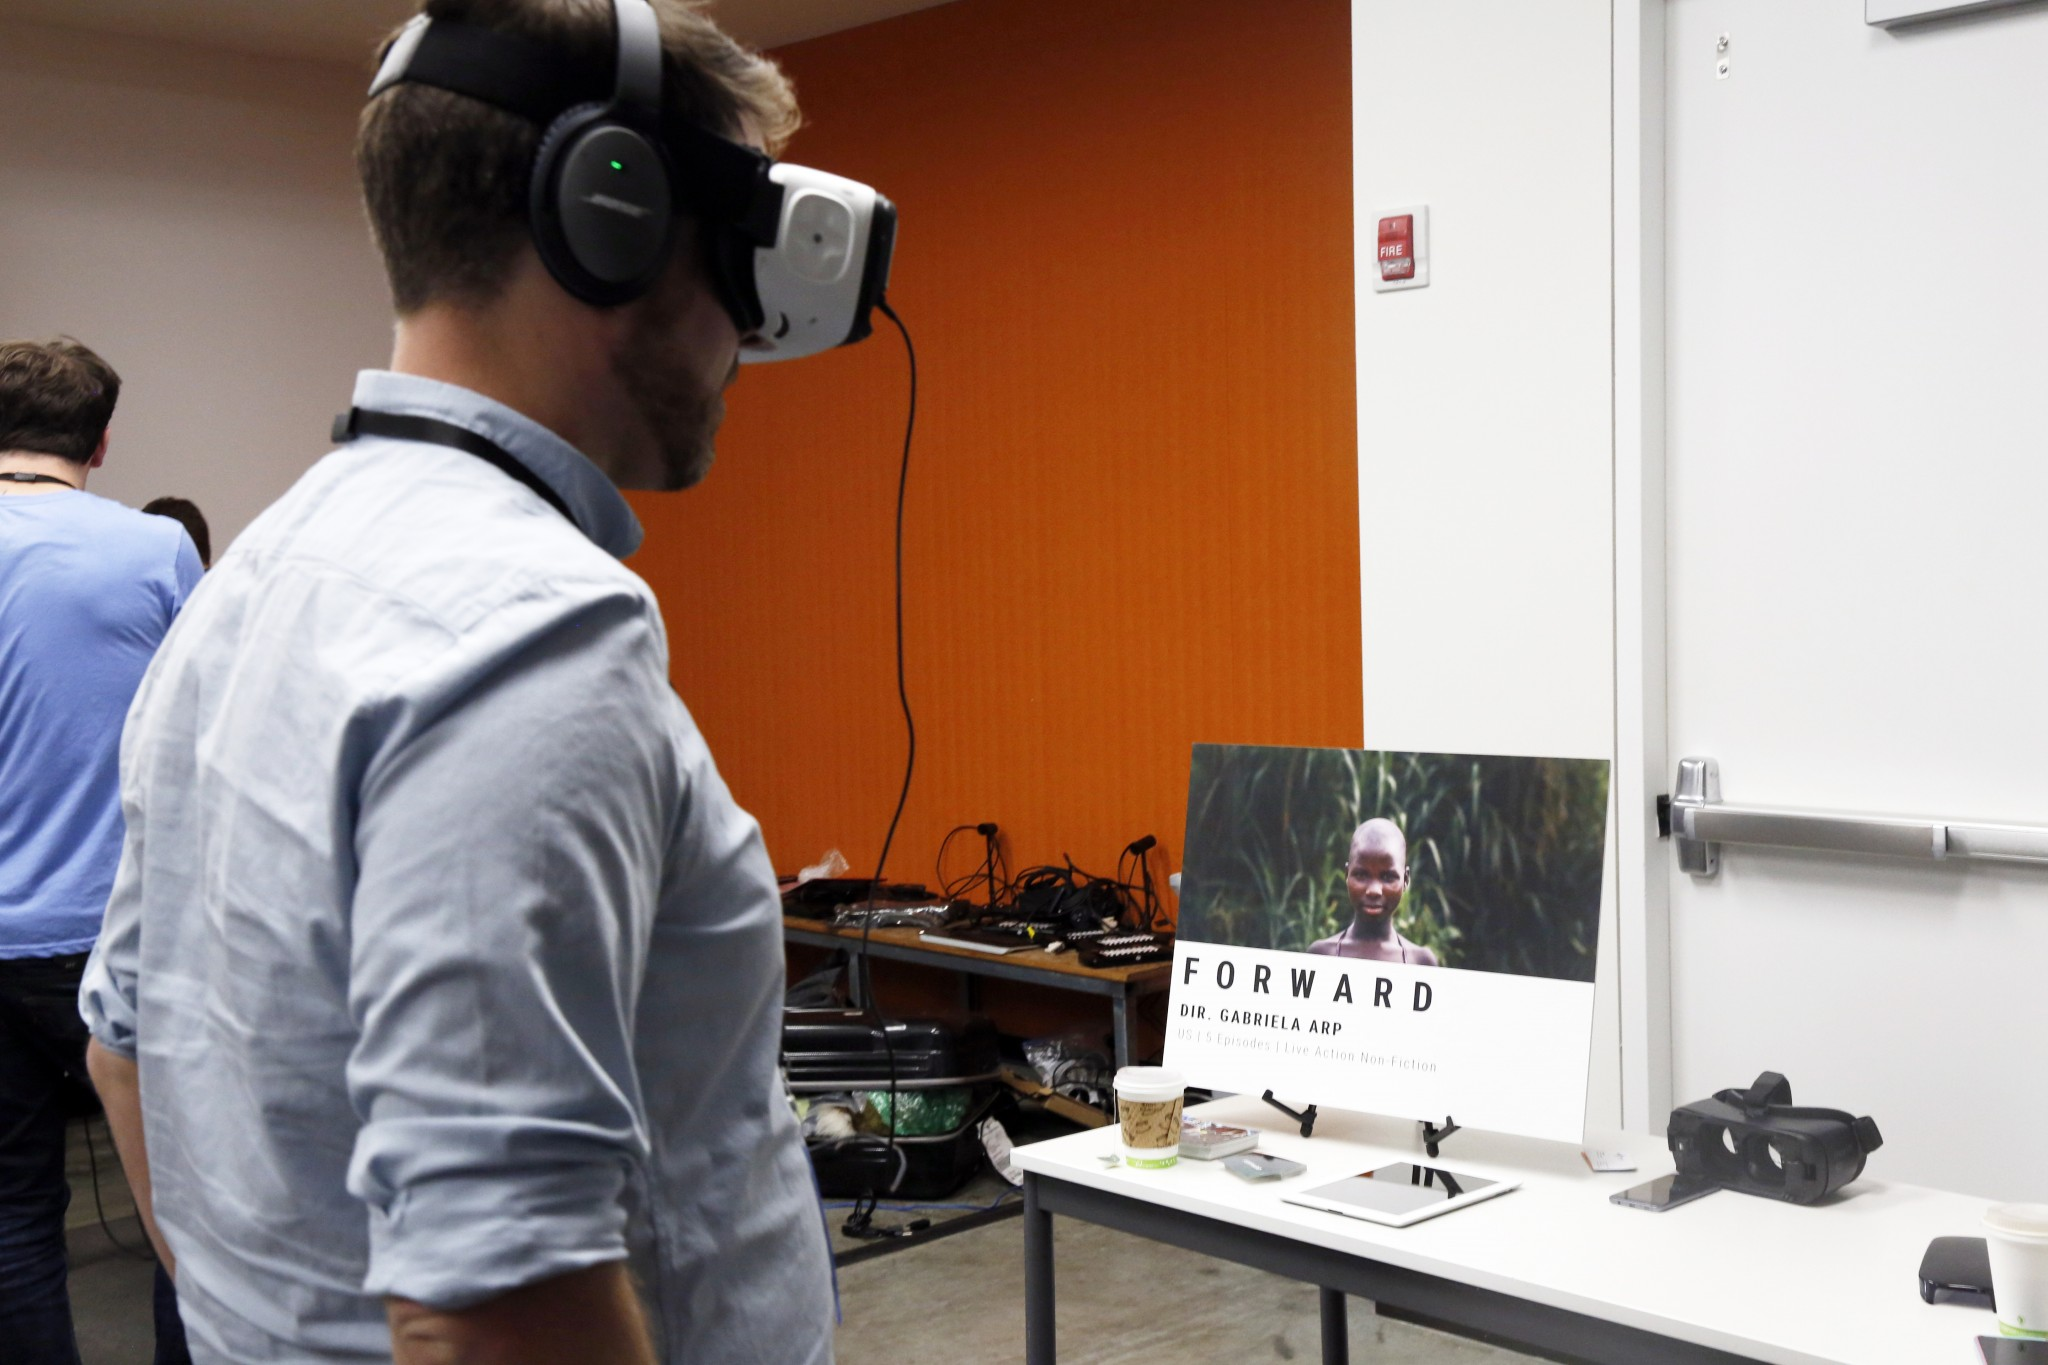 An attendee immersed in Arp's Forward demo.